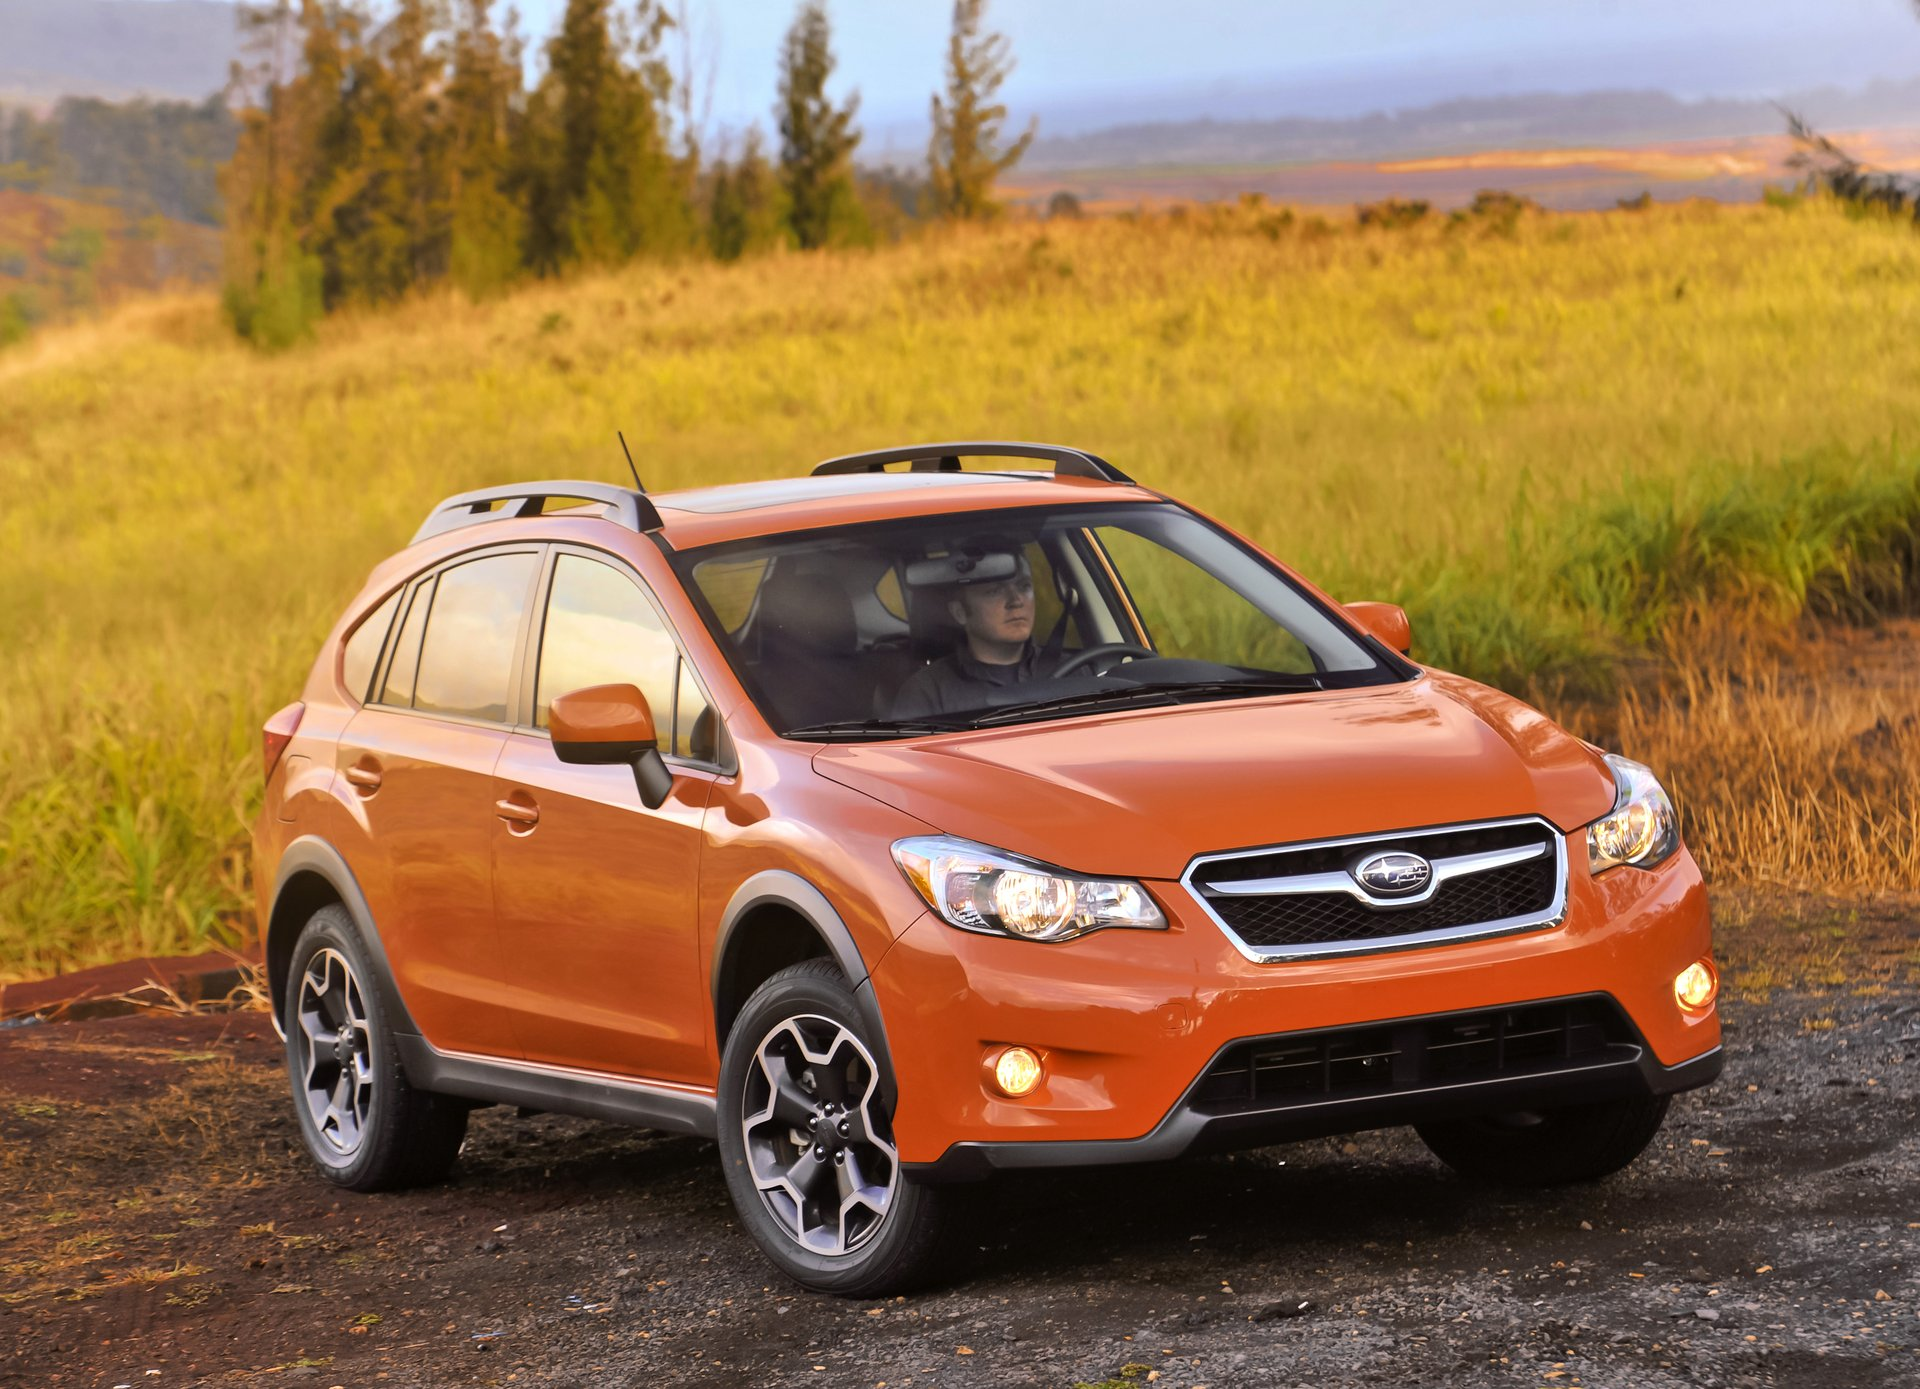 2015 Subaru Crosstrek Review, Ratings, Specs, Prices, and